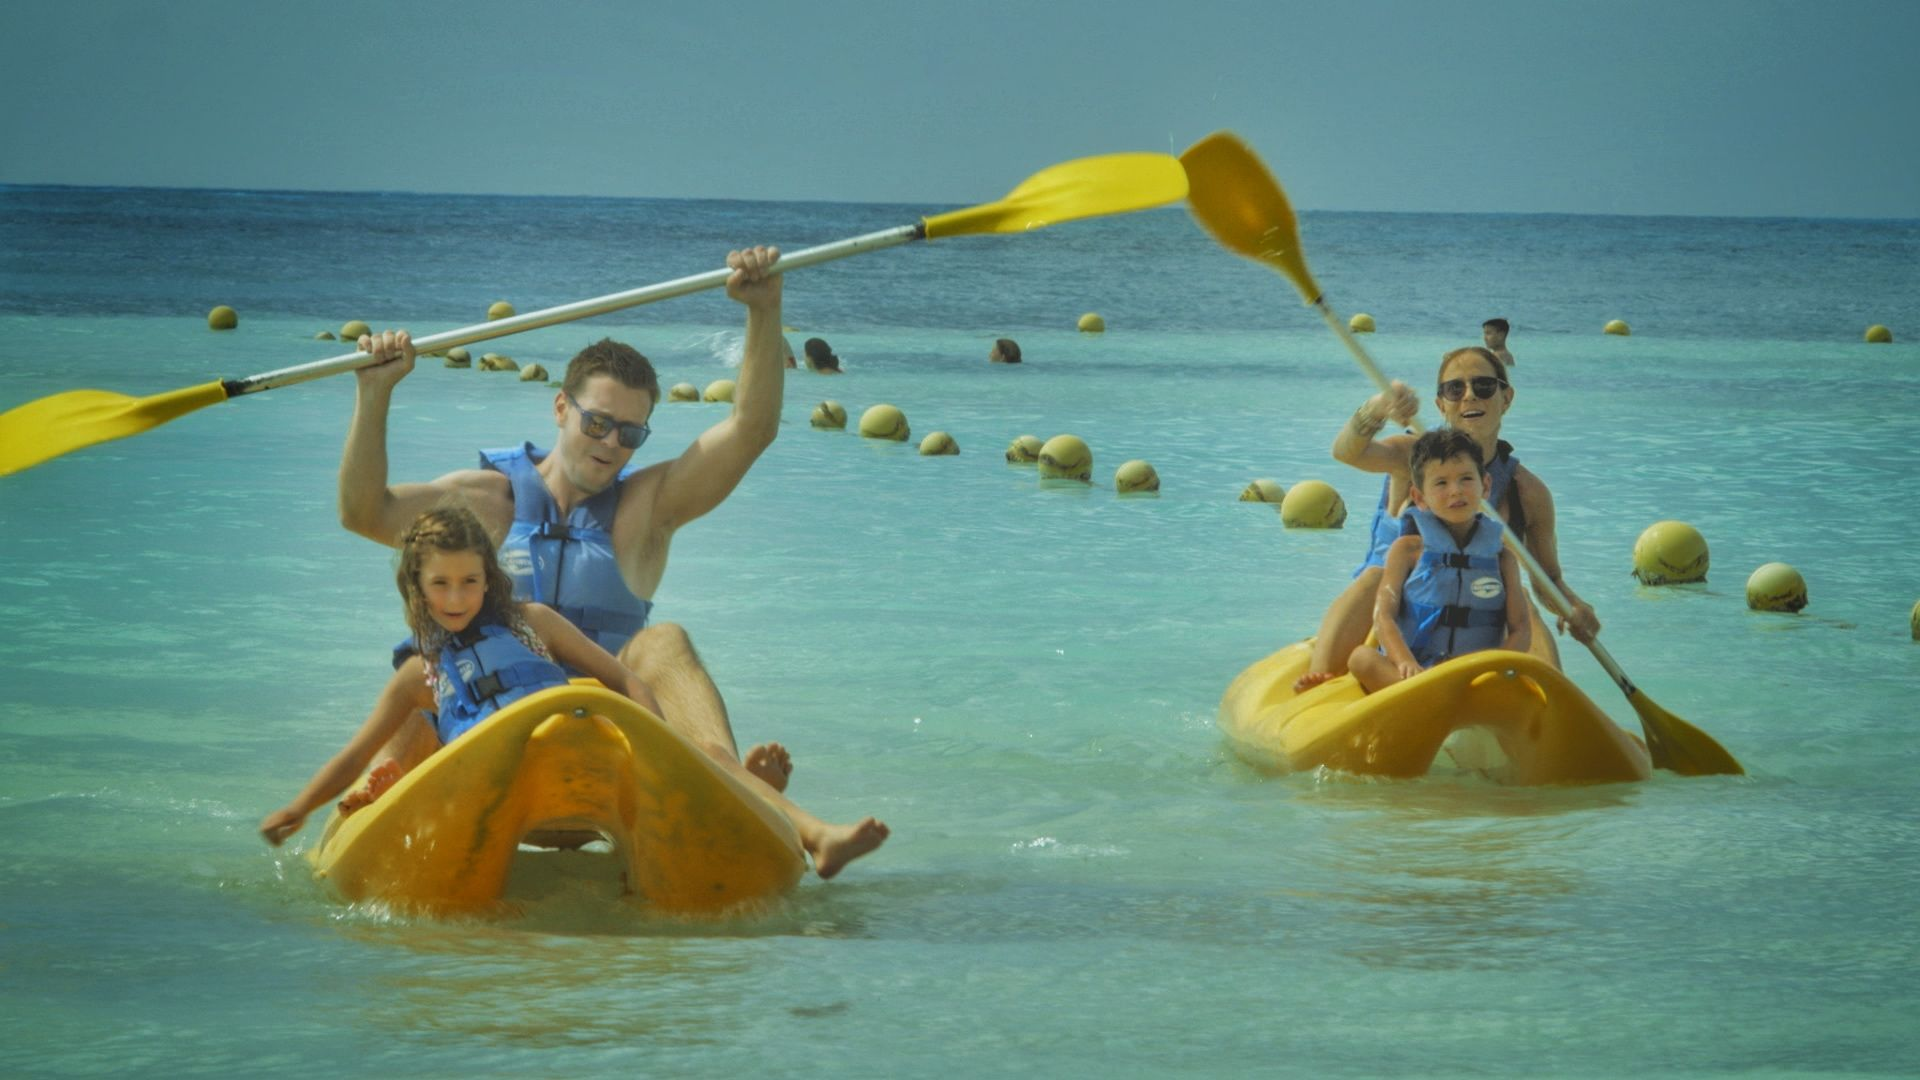 There S Tons Of Family Fun To Be Had On Your Next Getaway Whether You